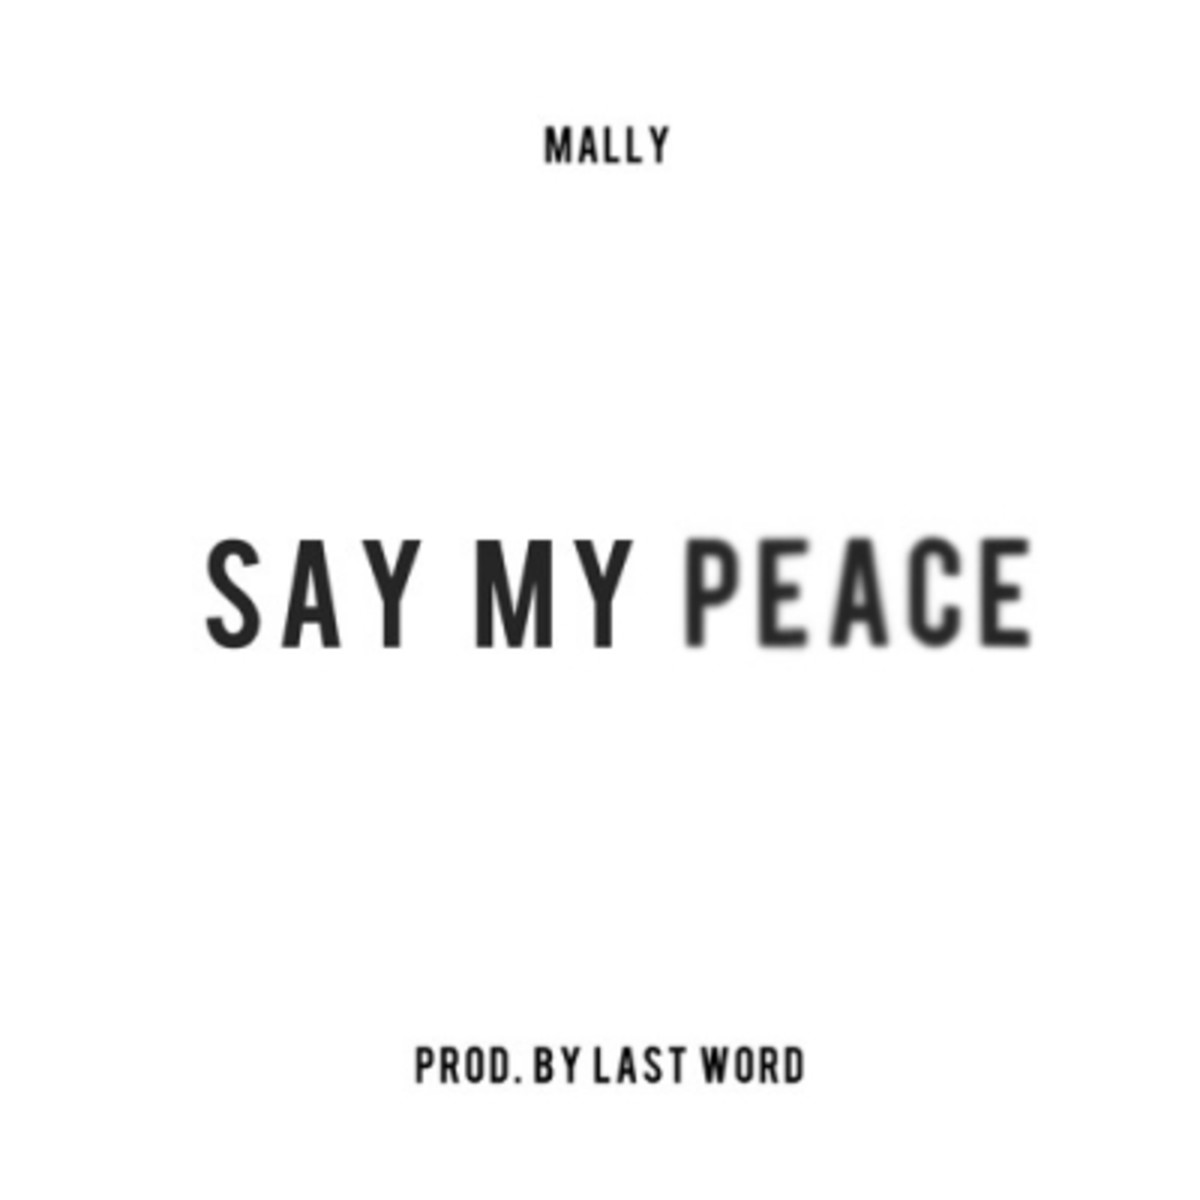 mally-say-my-peace.jpg